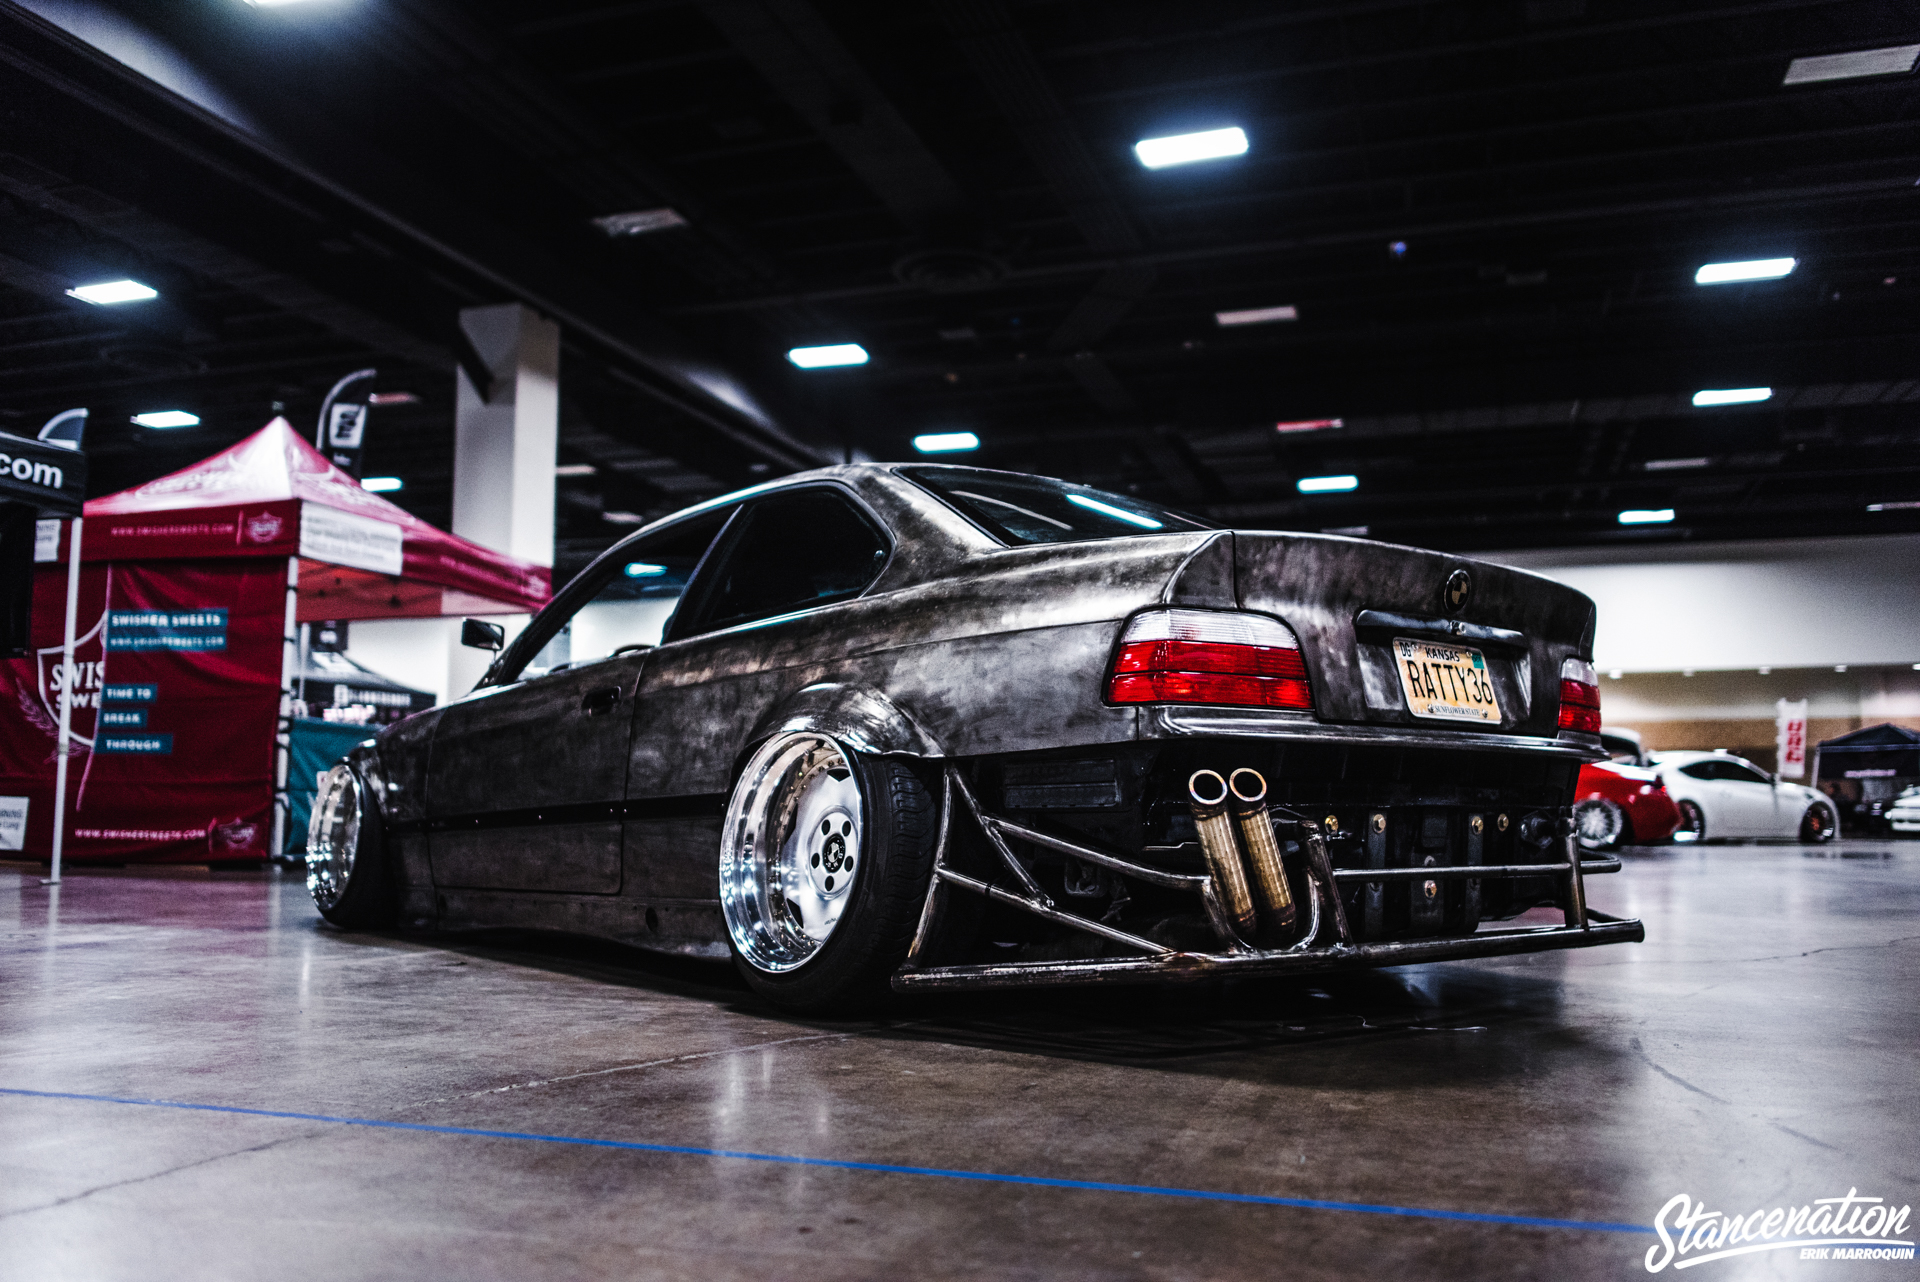 [Image: StanceNation-Texas-2016-131-1.jpg]